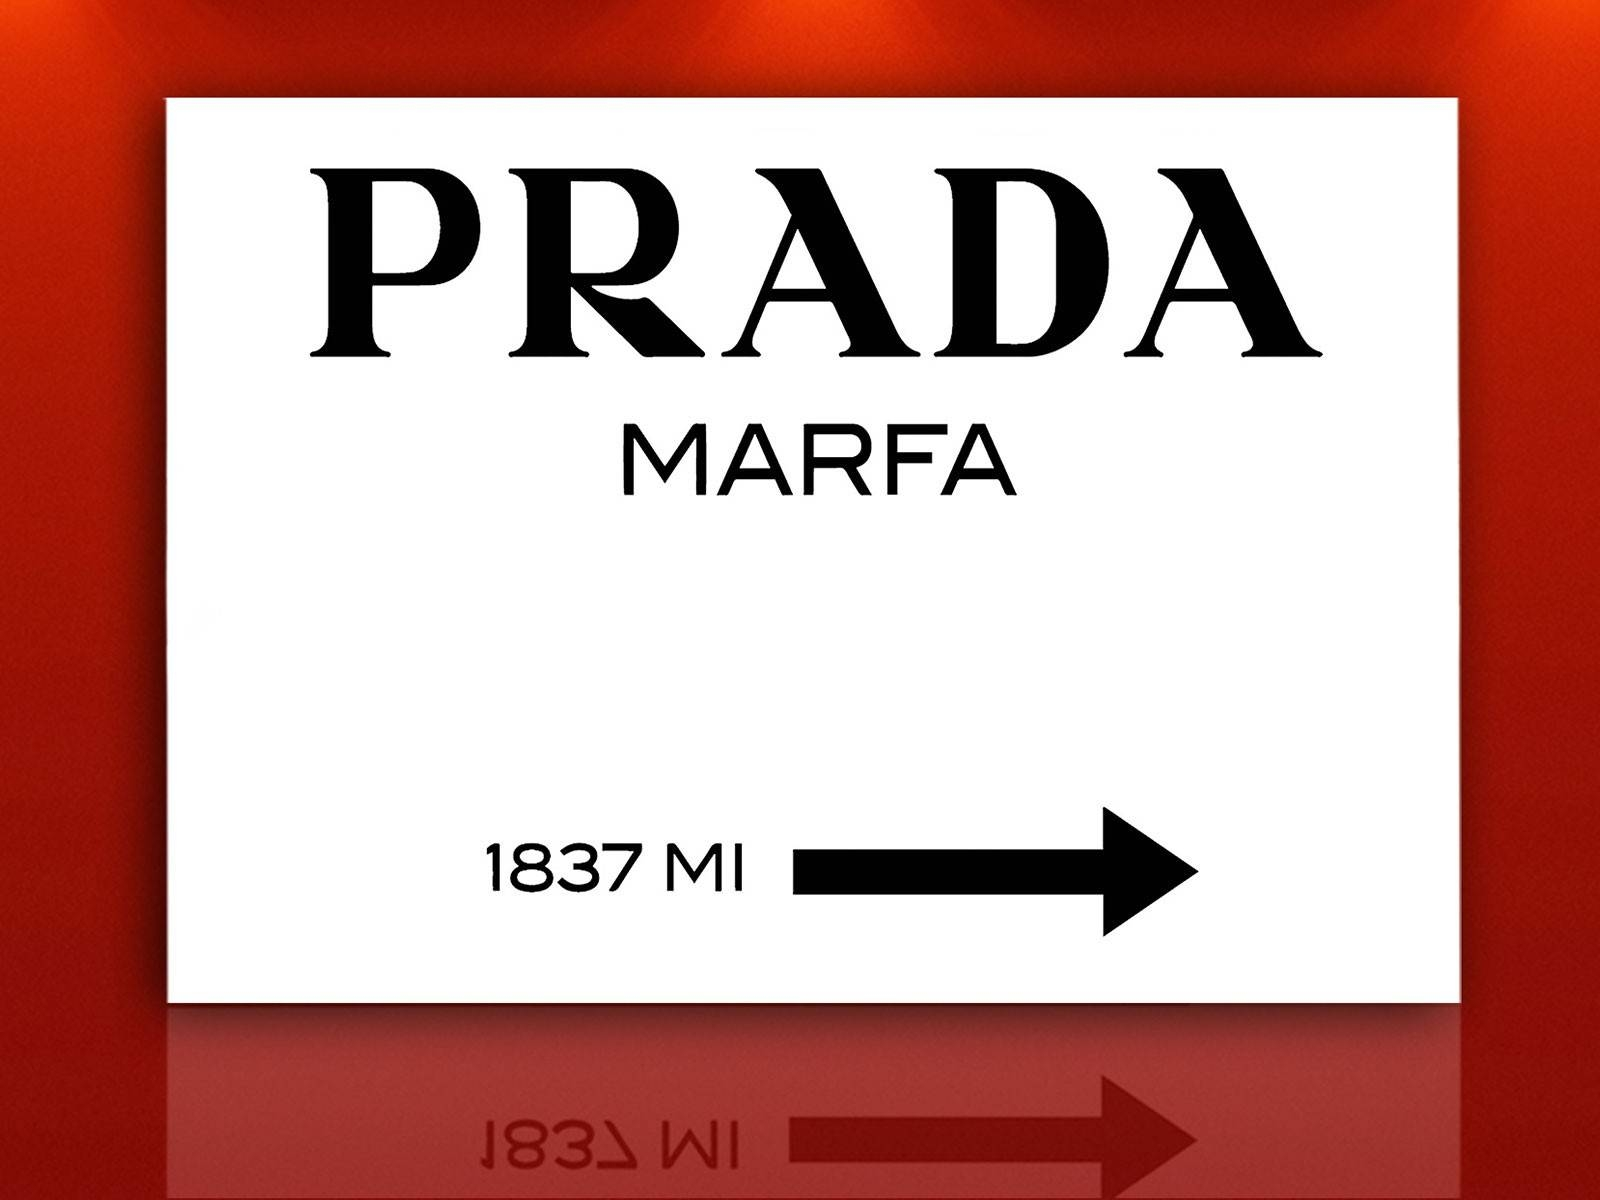 Prada Marfa Gossip Girl Sign, Painting Canvas, Wall Art, 28X20Inch Intended For Most Current Prada Wall Art (View 22 of 25)